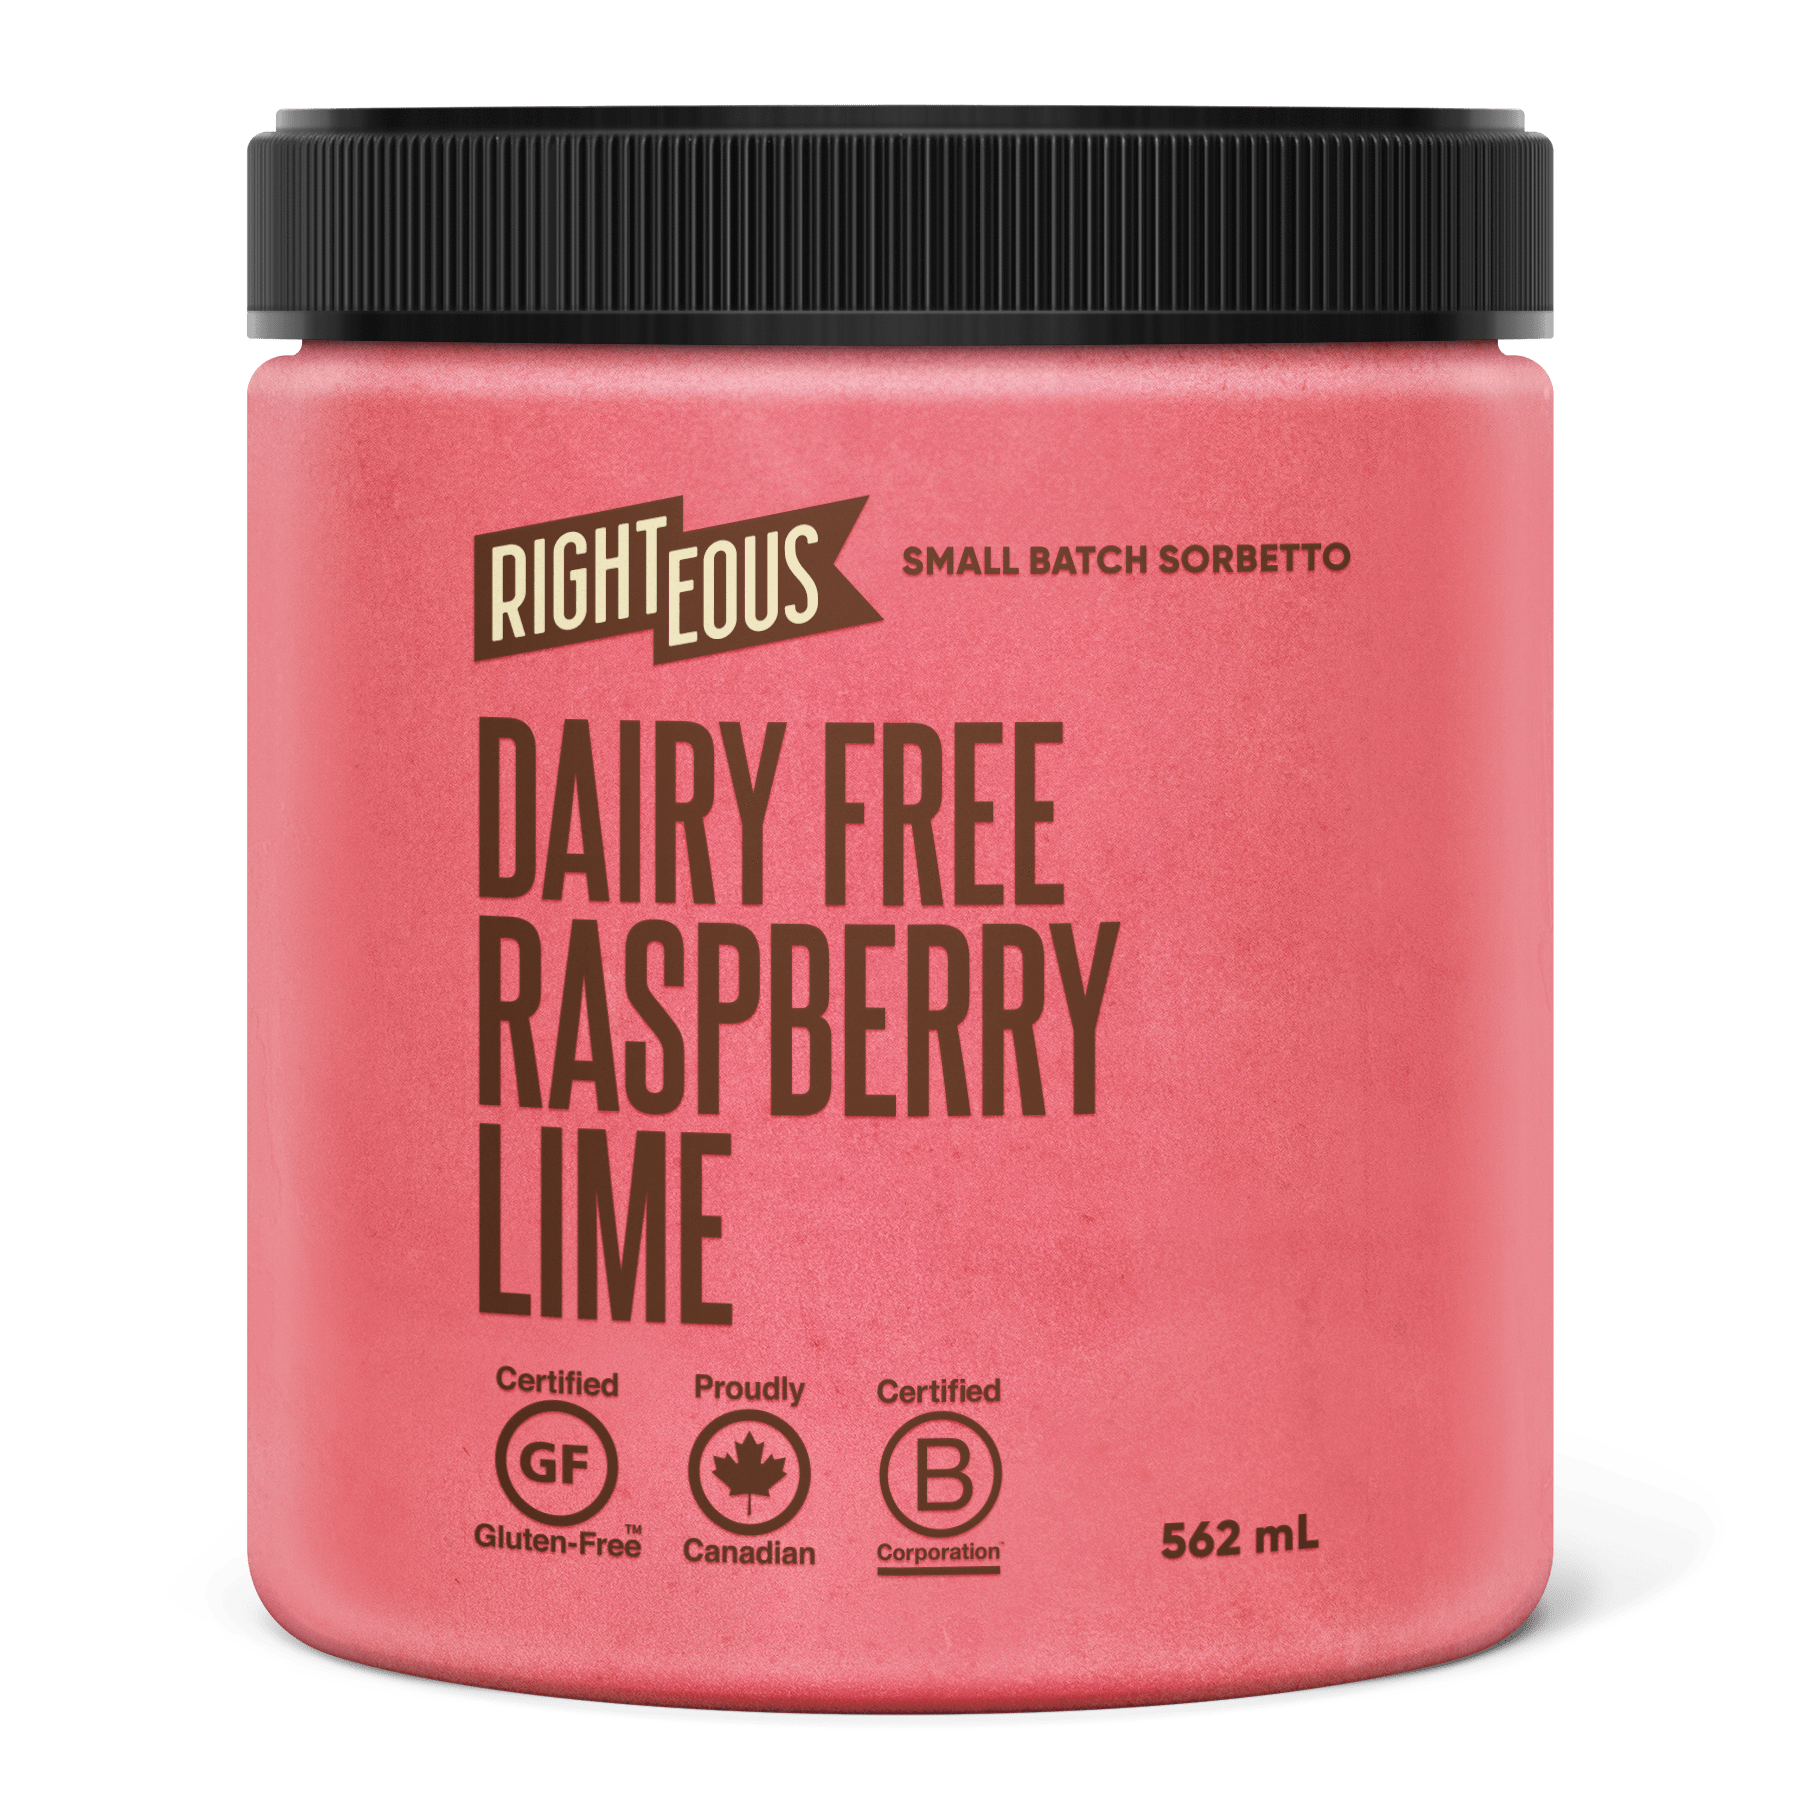 Pint of Righteous Dairy Free Raspberry Lime sorbetto